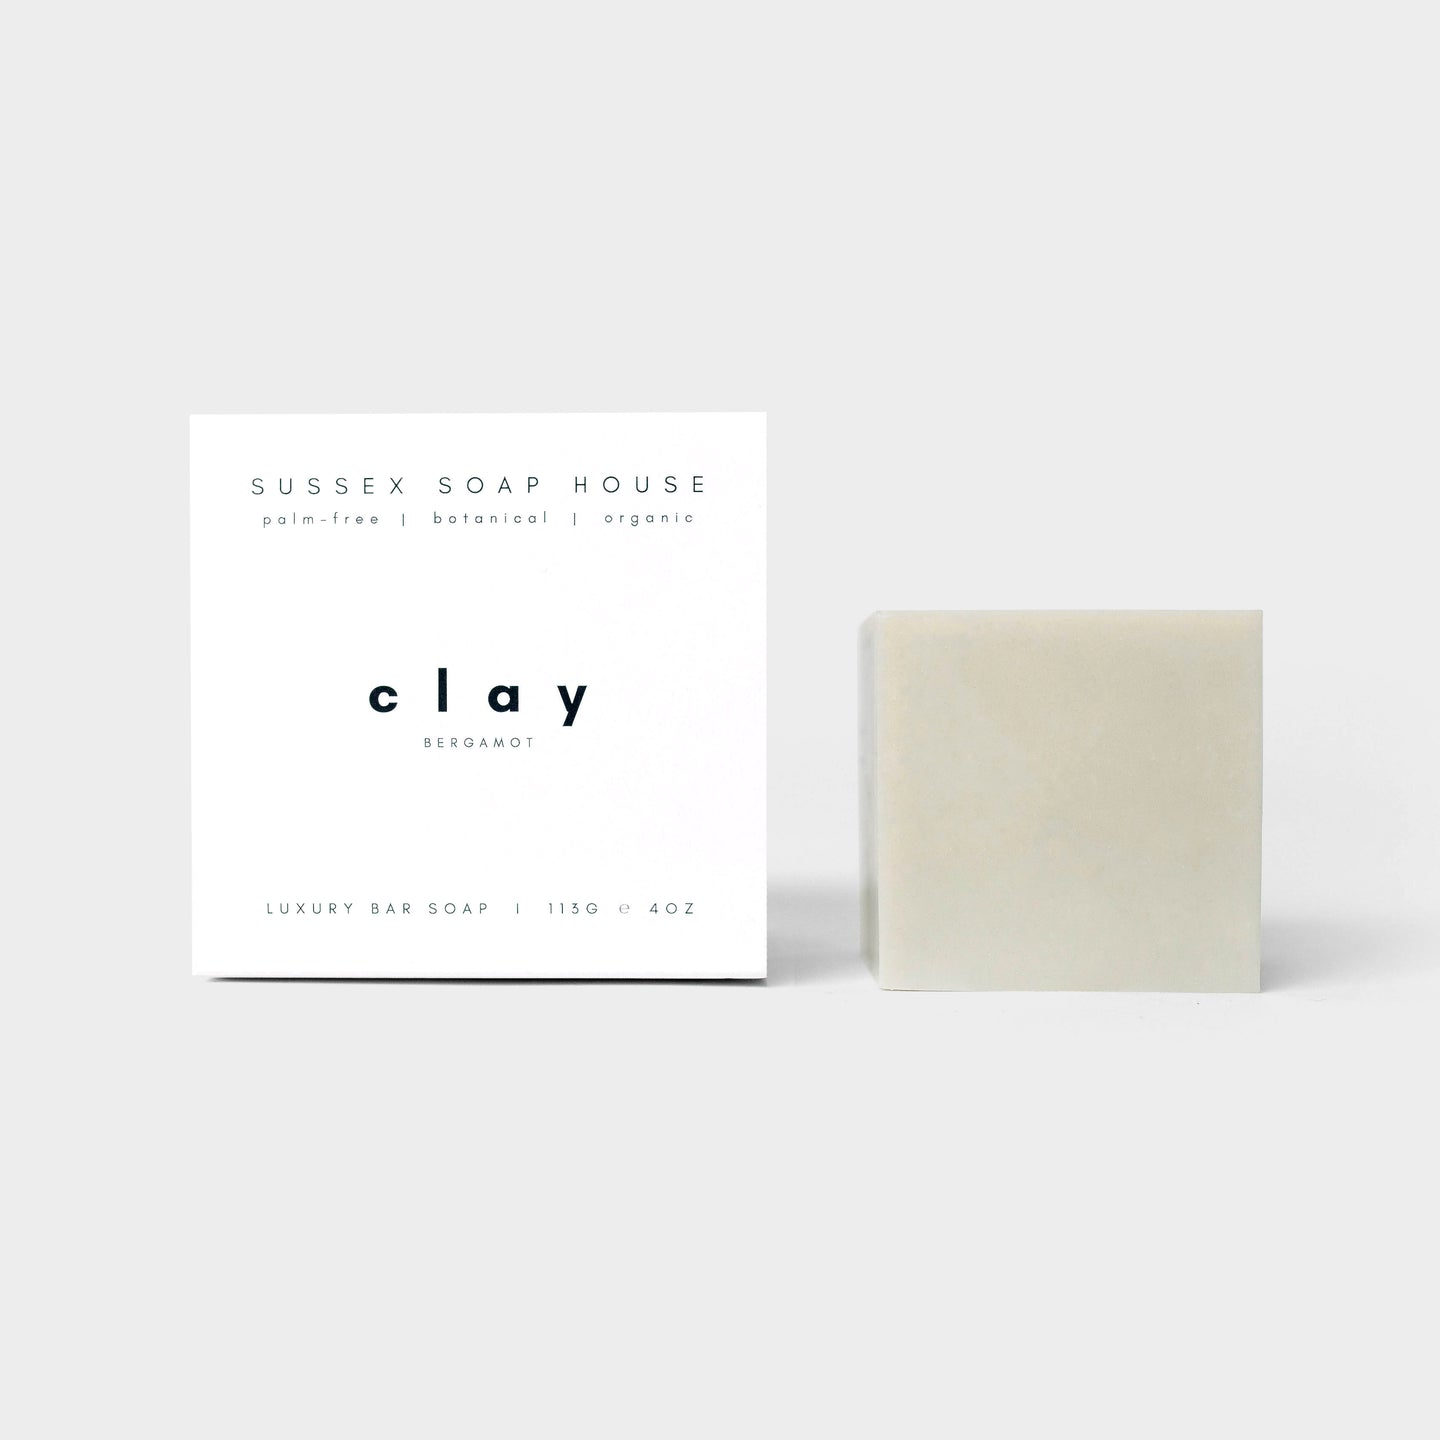 SUSSEX SOAP HOUSE Formulated with mineral-rich clays, nourishing organic plant oils & a cleansing citrus blend of bergamot, lemon, & rosemary essential oils, our gently exfoliating clay bar draws impurities, tones & clarifies the skin with a fresh and fragrant lather cube